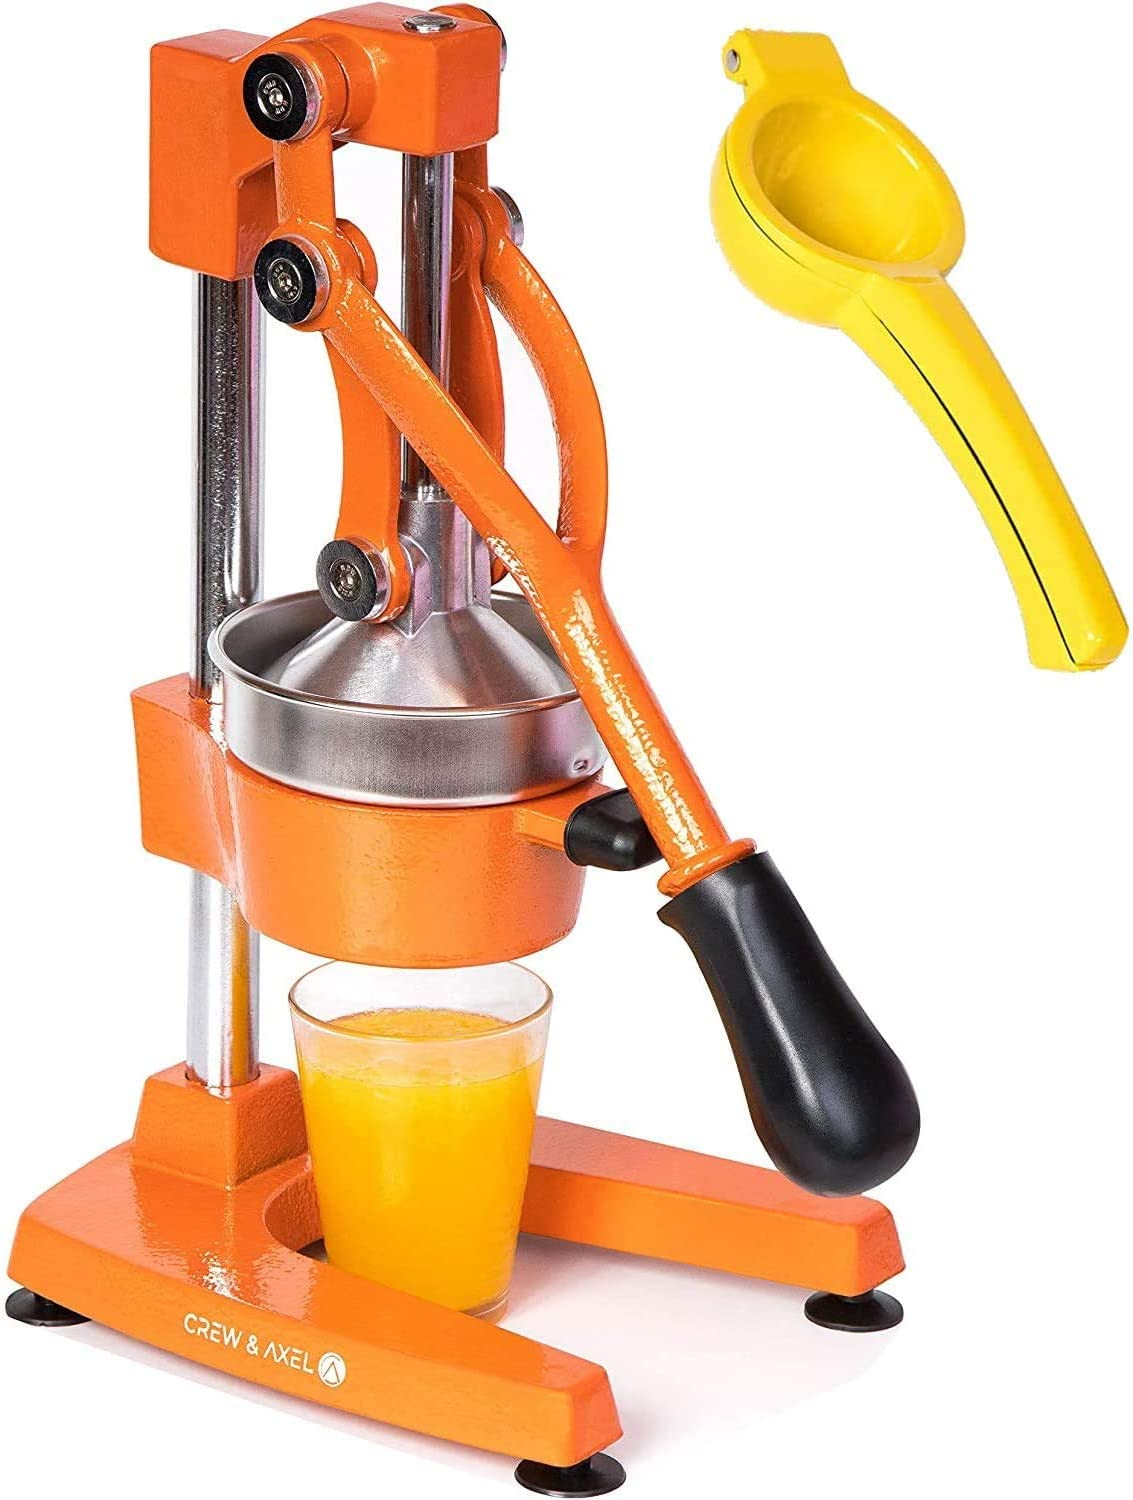 Crew & Axel Citrus Juicer - Manual Orange Juice Squeezer – Heavy Duty Cast Iron Commercial Grade Pomegranate Grapefruit Lemon Lime Juicer Maker + Lemon Squeezer Press W Anti Slip Suction Cup Base Orange